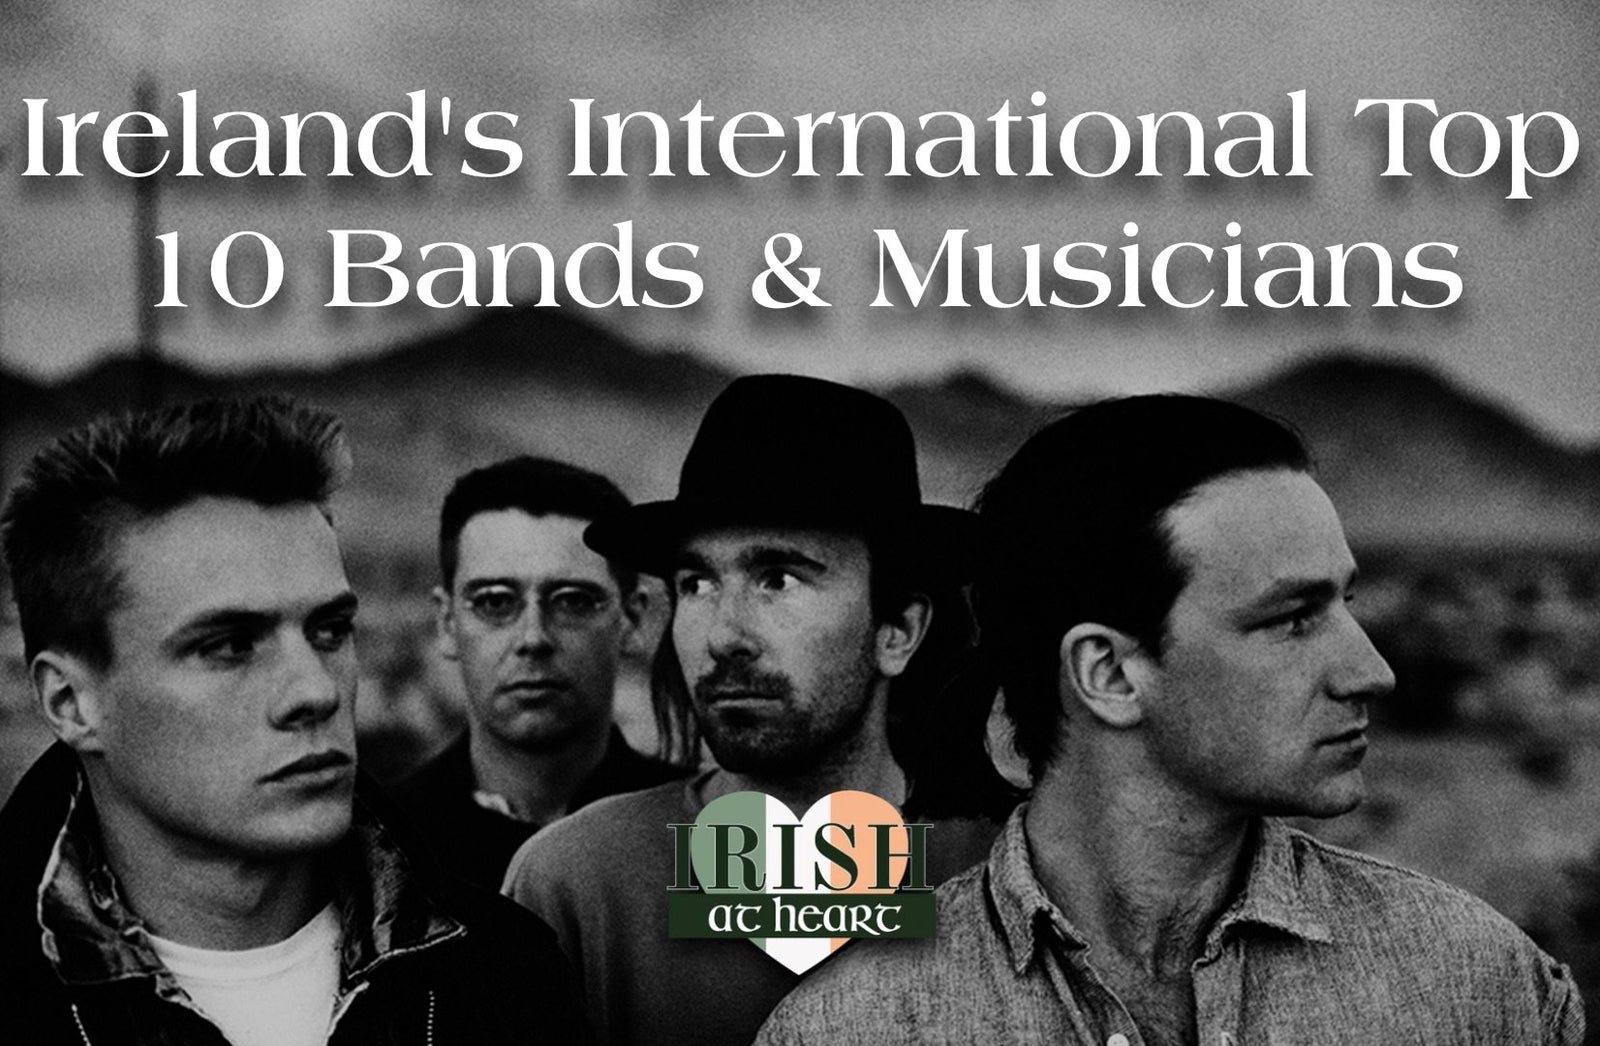 Ireland's International Top 10 Bands & Musicians